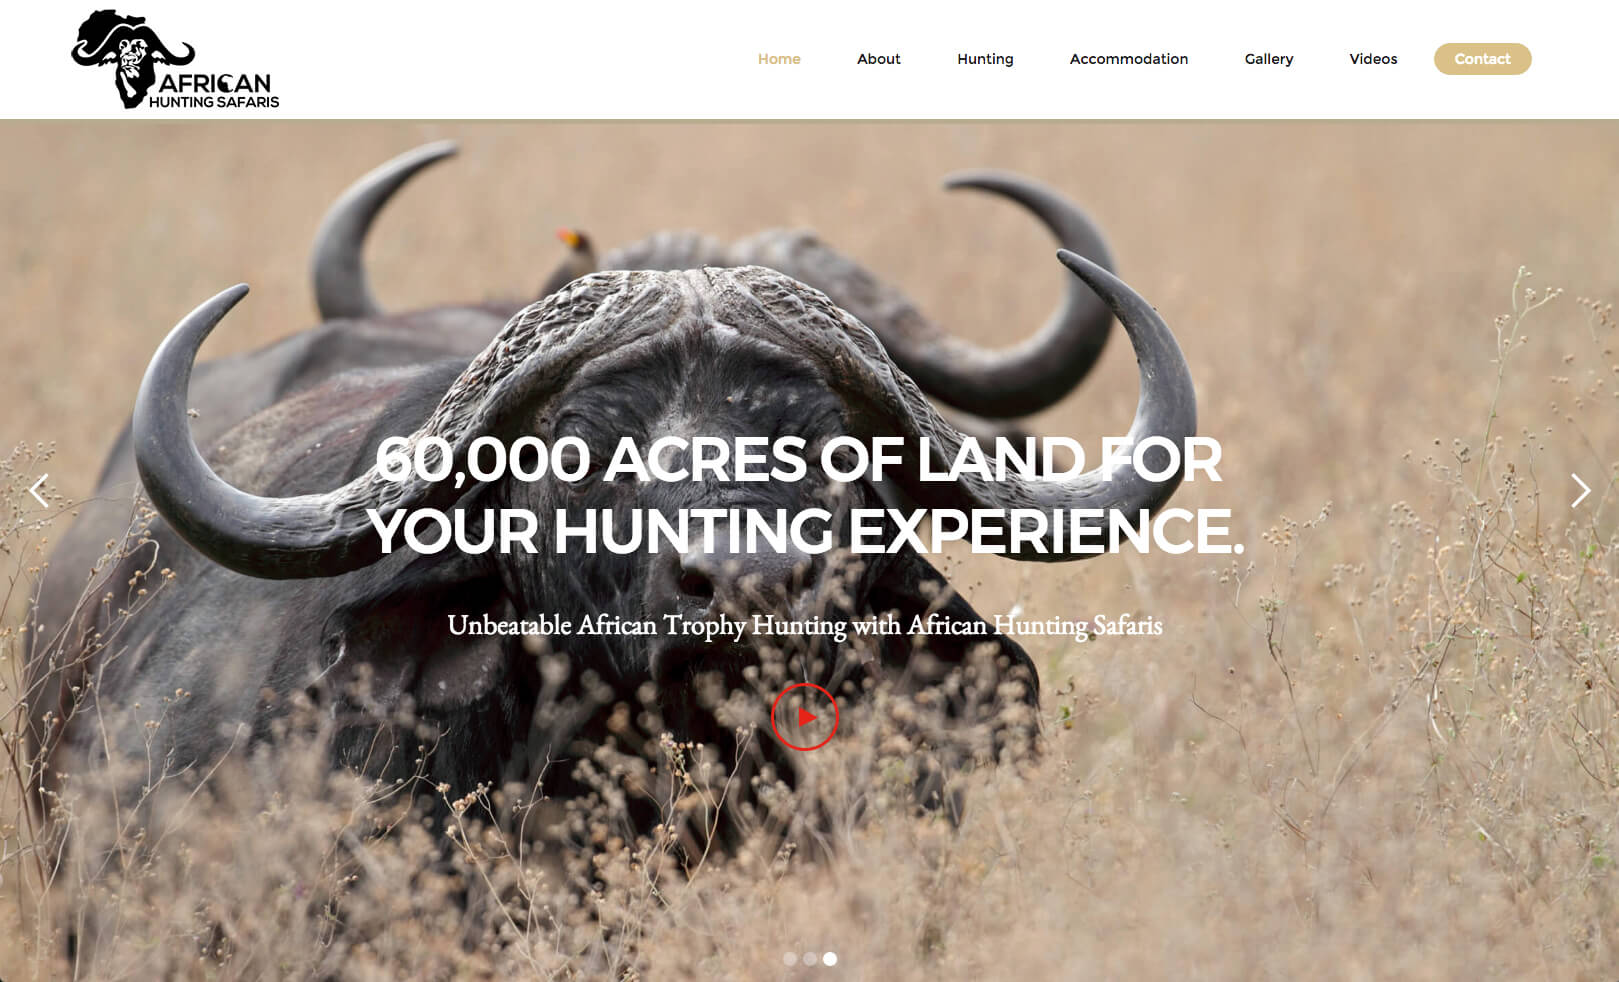 Conceptualising, design of website and hosting services for a hunting outfitter based in the Limpopo province of South Africa.